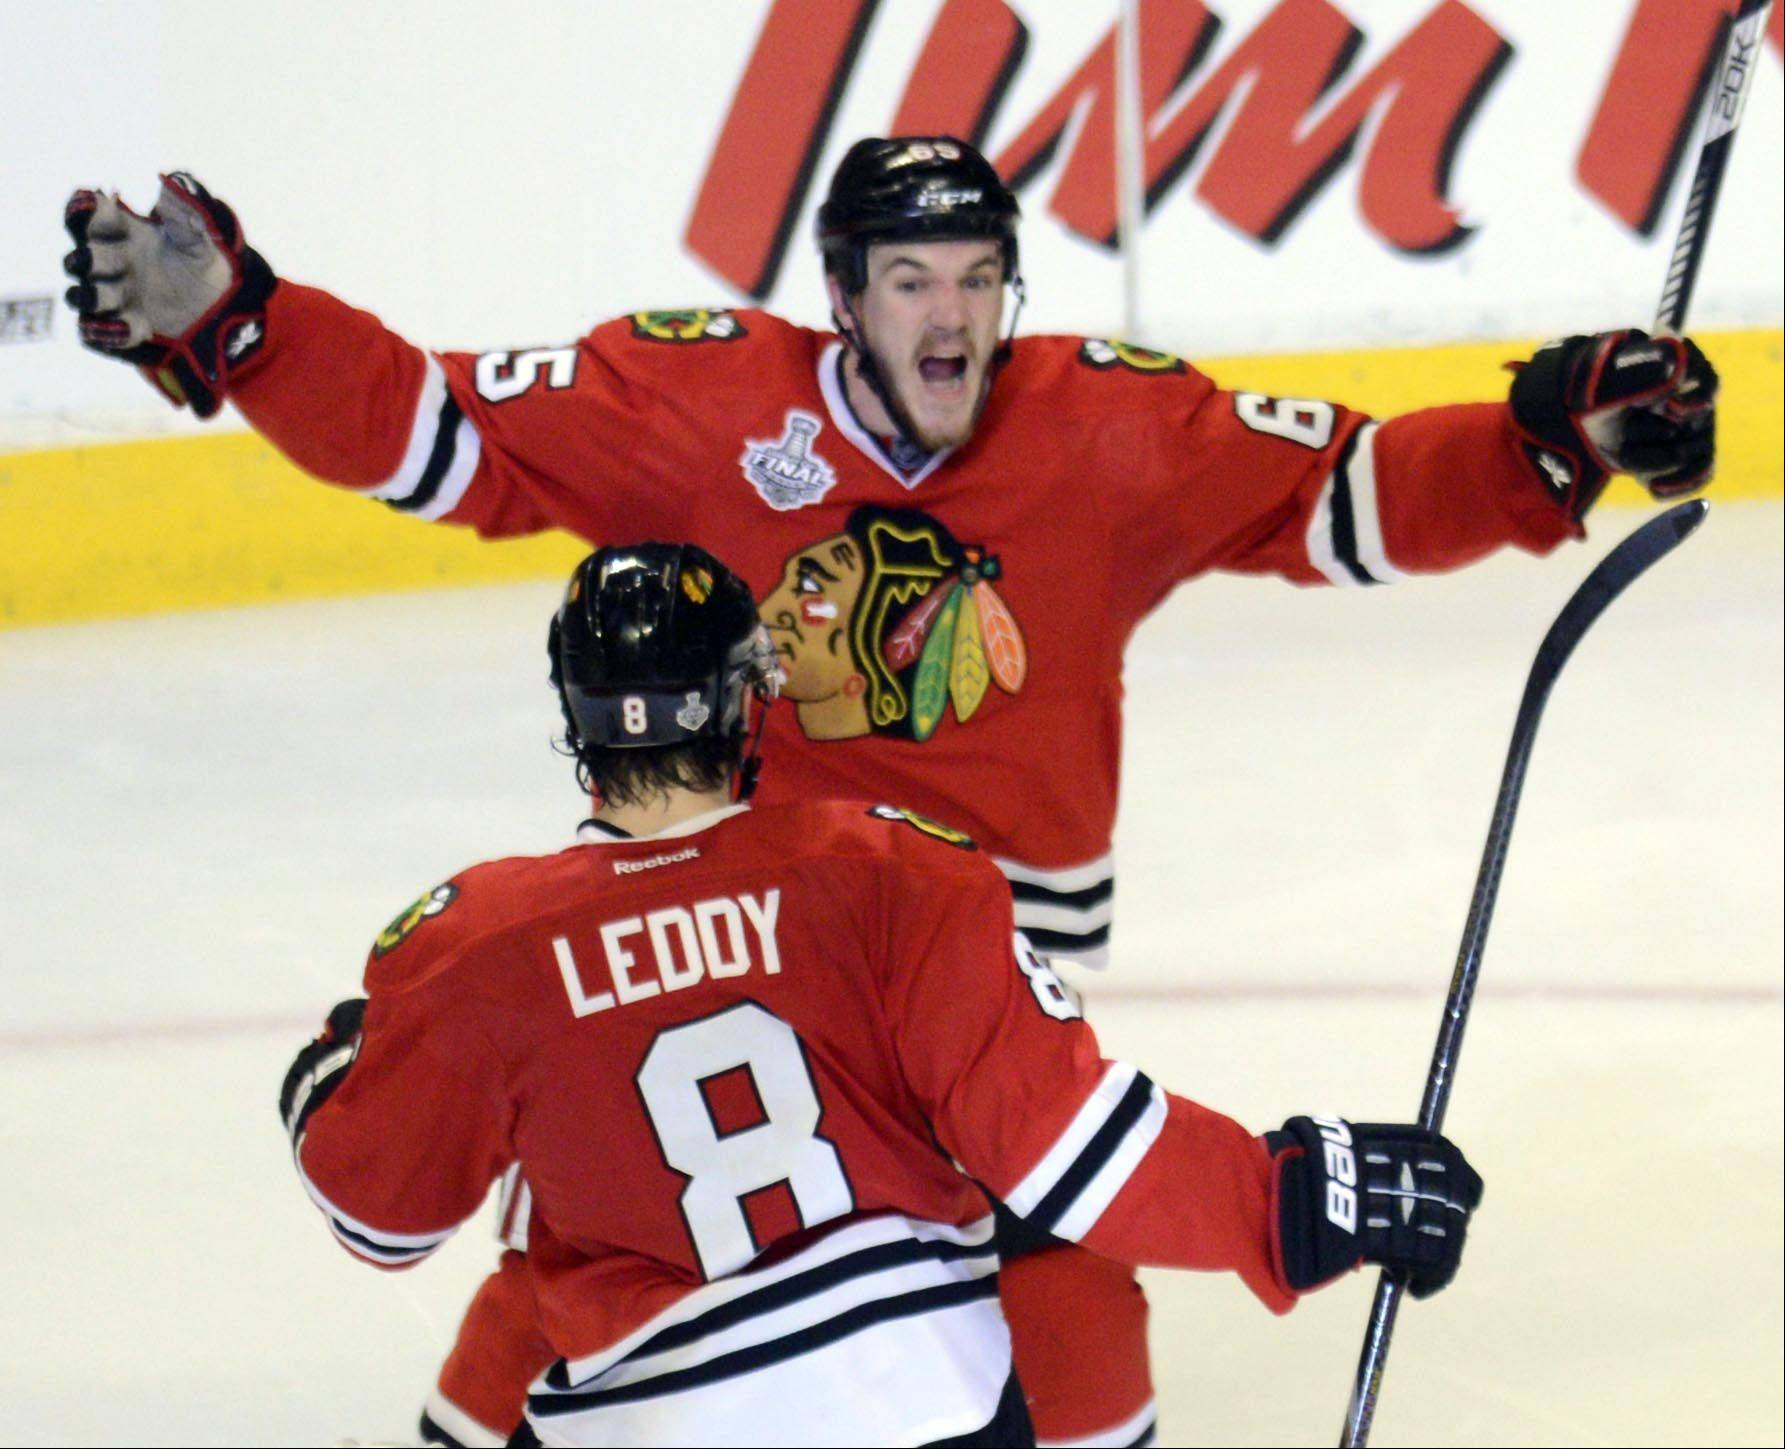 Blackhawks center Andrew Shaw reacts after scoring the game-winning goal against the Boston Bruins in Game 1 of the Stanley Cup.